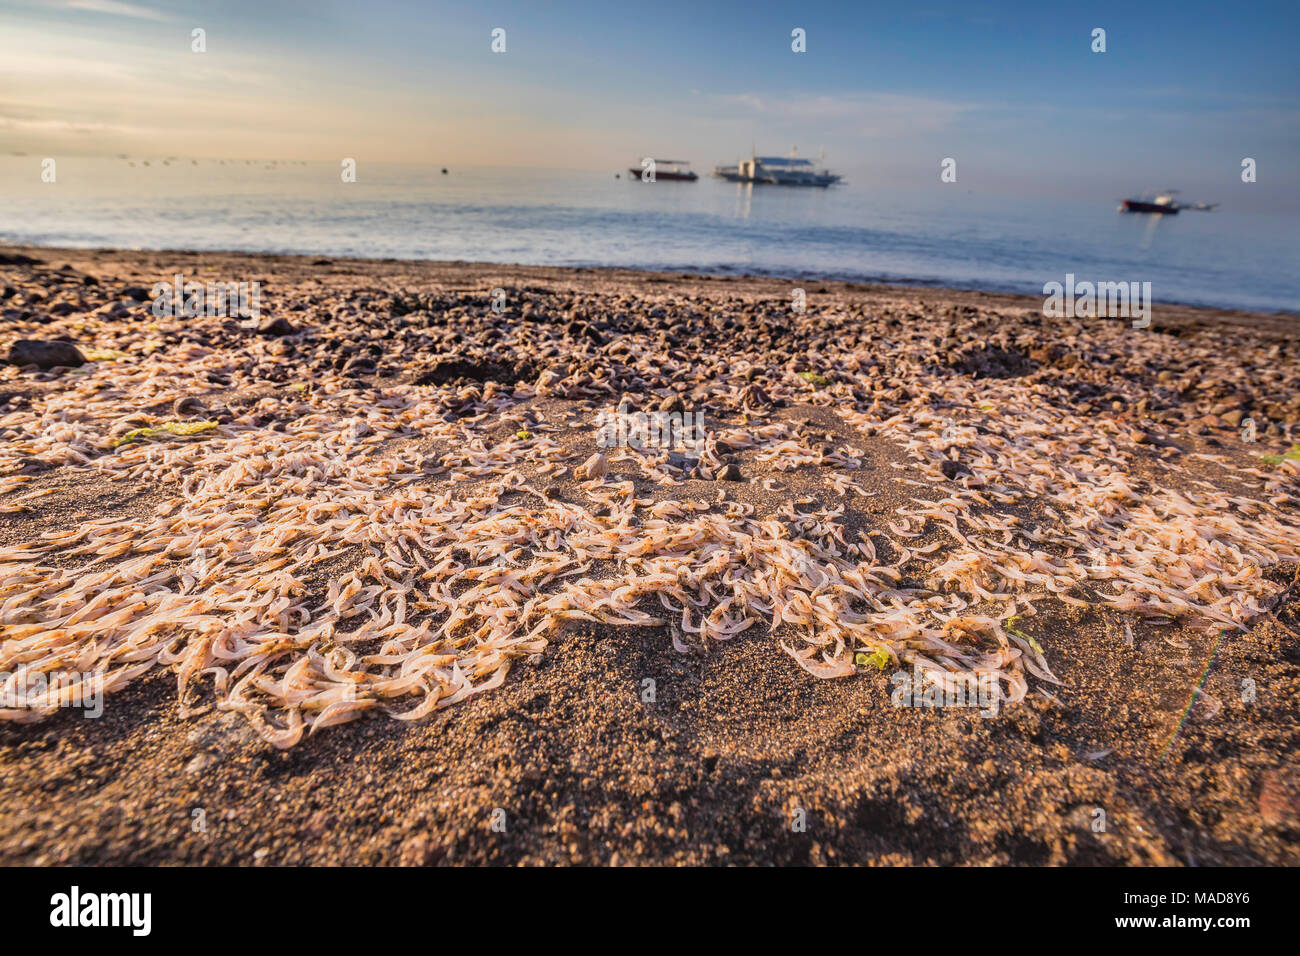 At night plankton is attracted to lights on the coastline where this mass is pictured. The majority here are an unknown species of mysid shrimp of the Stock Photo